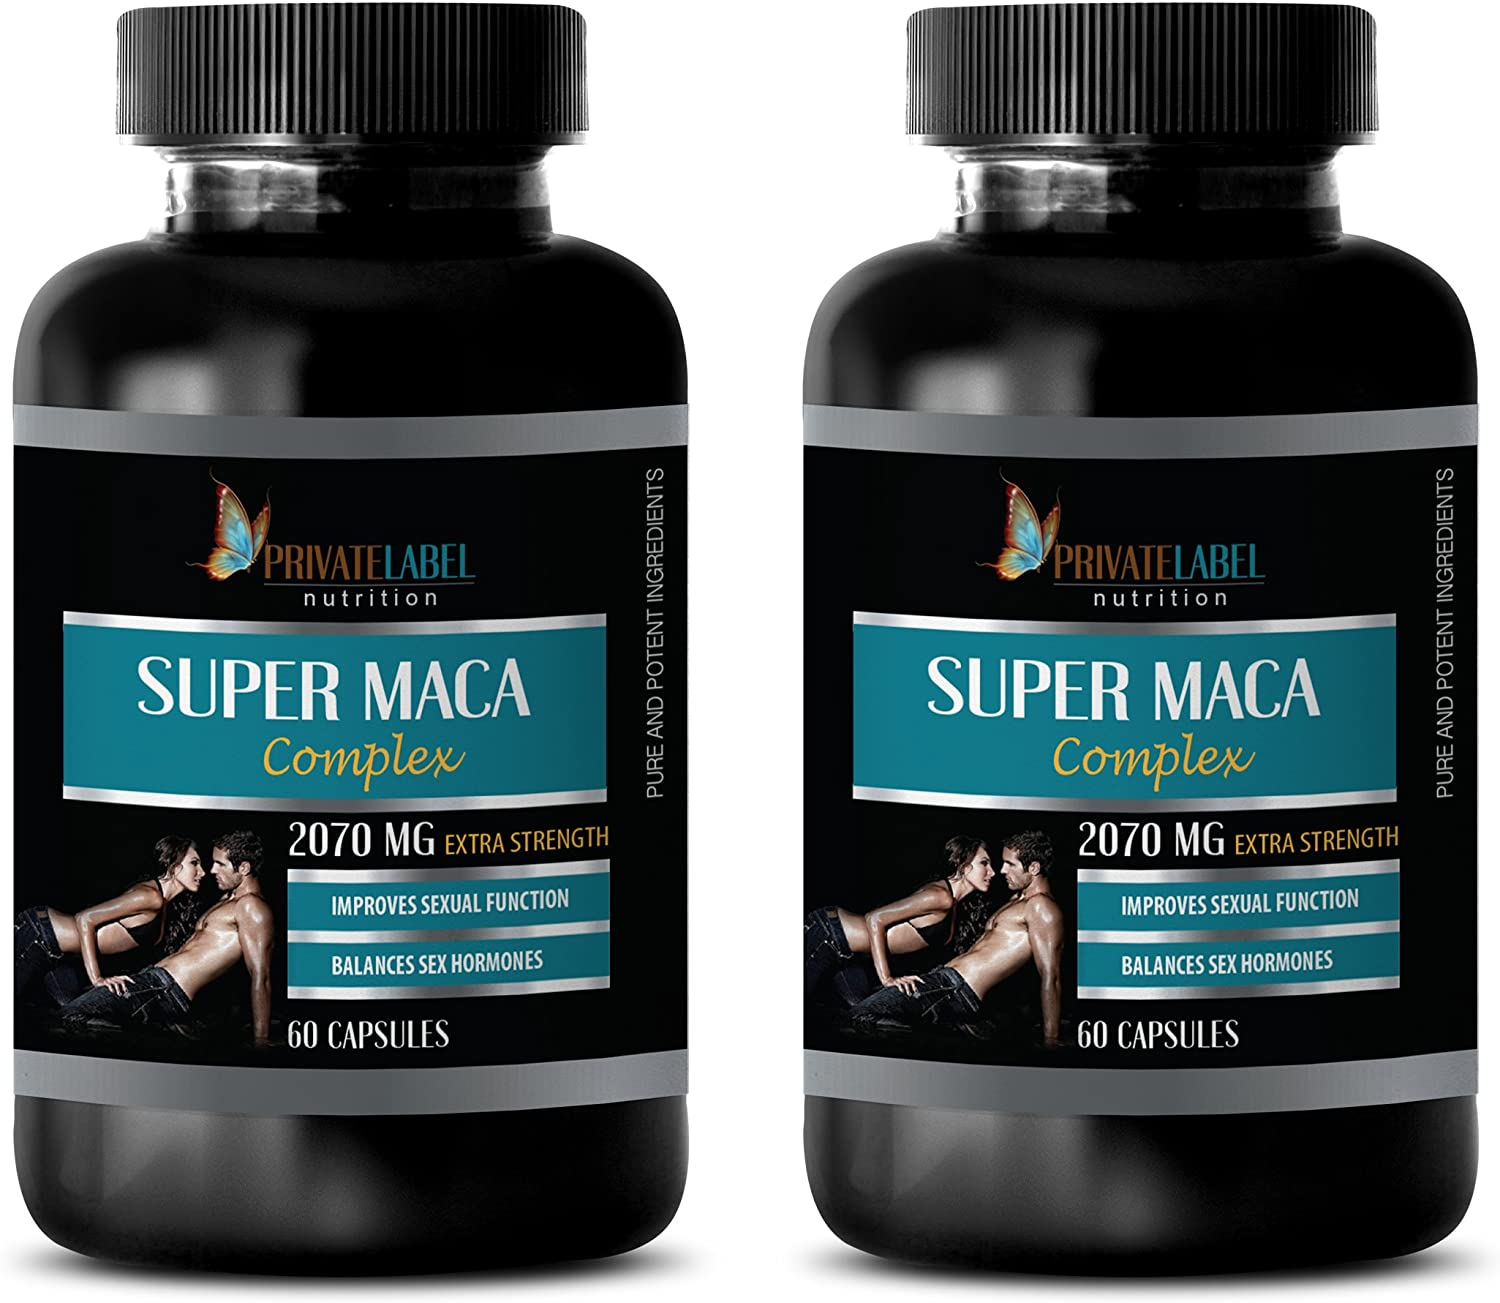 Male Enhancing Pills yohimbe - Super MACA Complex - Improves Sexual Function - Horny Goat Weed for Men Sex Drive - 2 Bottles 120 Capsules